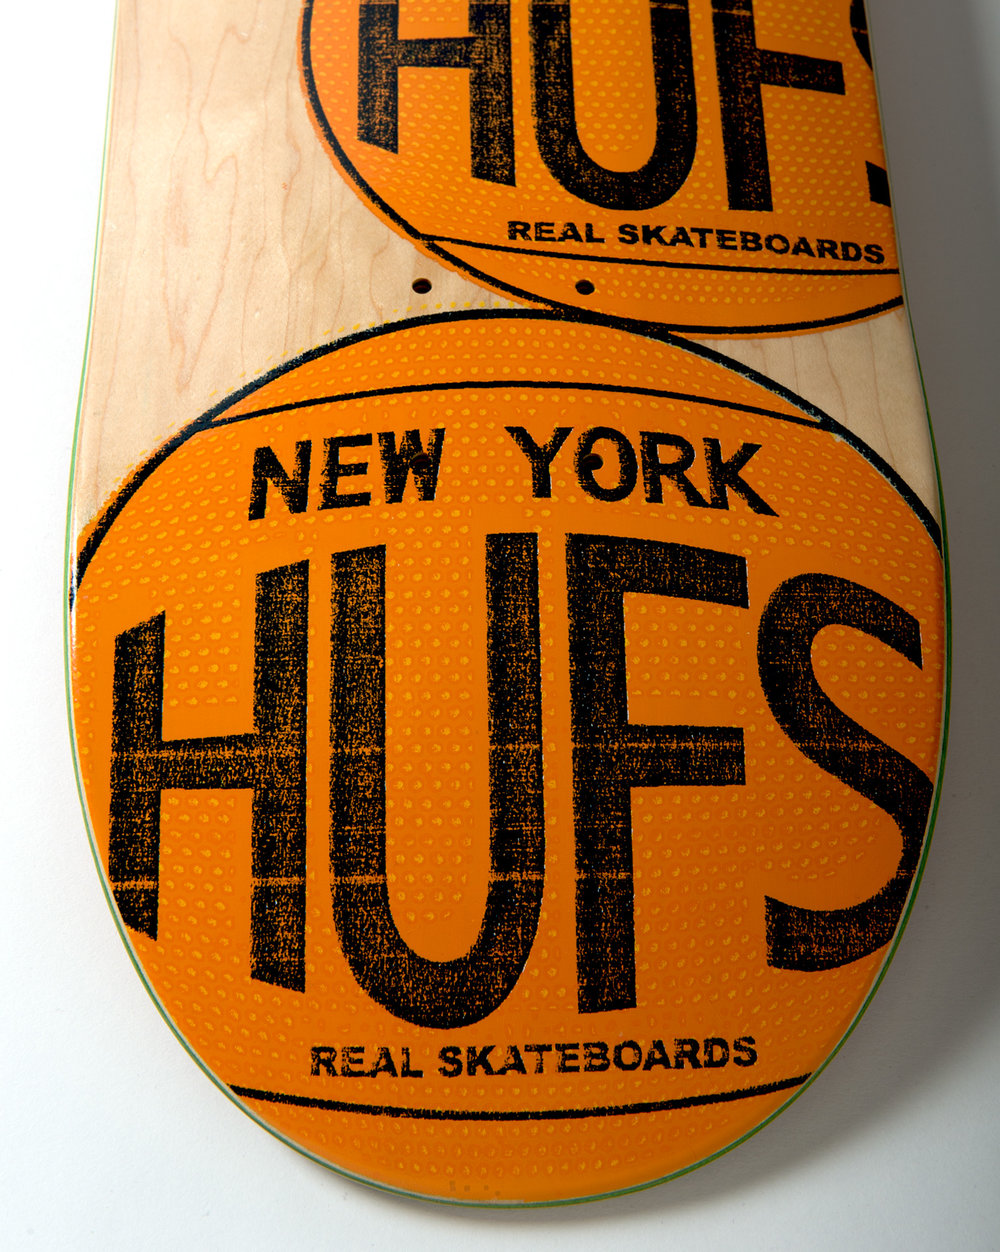 REAL SKATEBOARDS HUF Re-Issue Deck